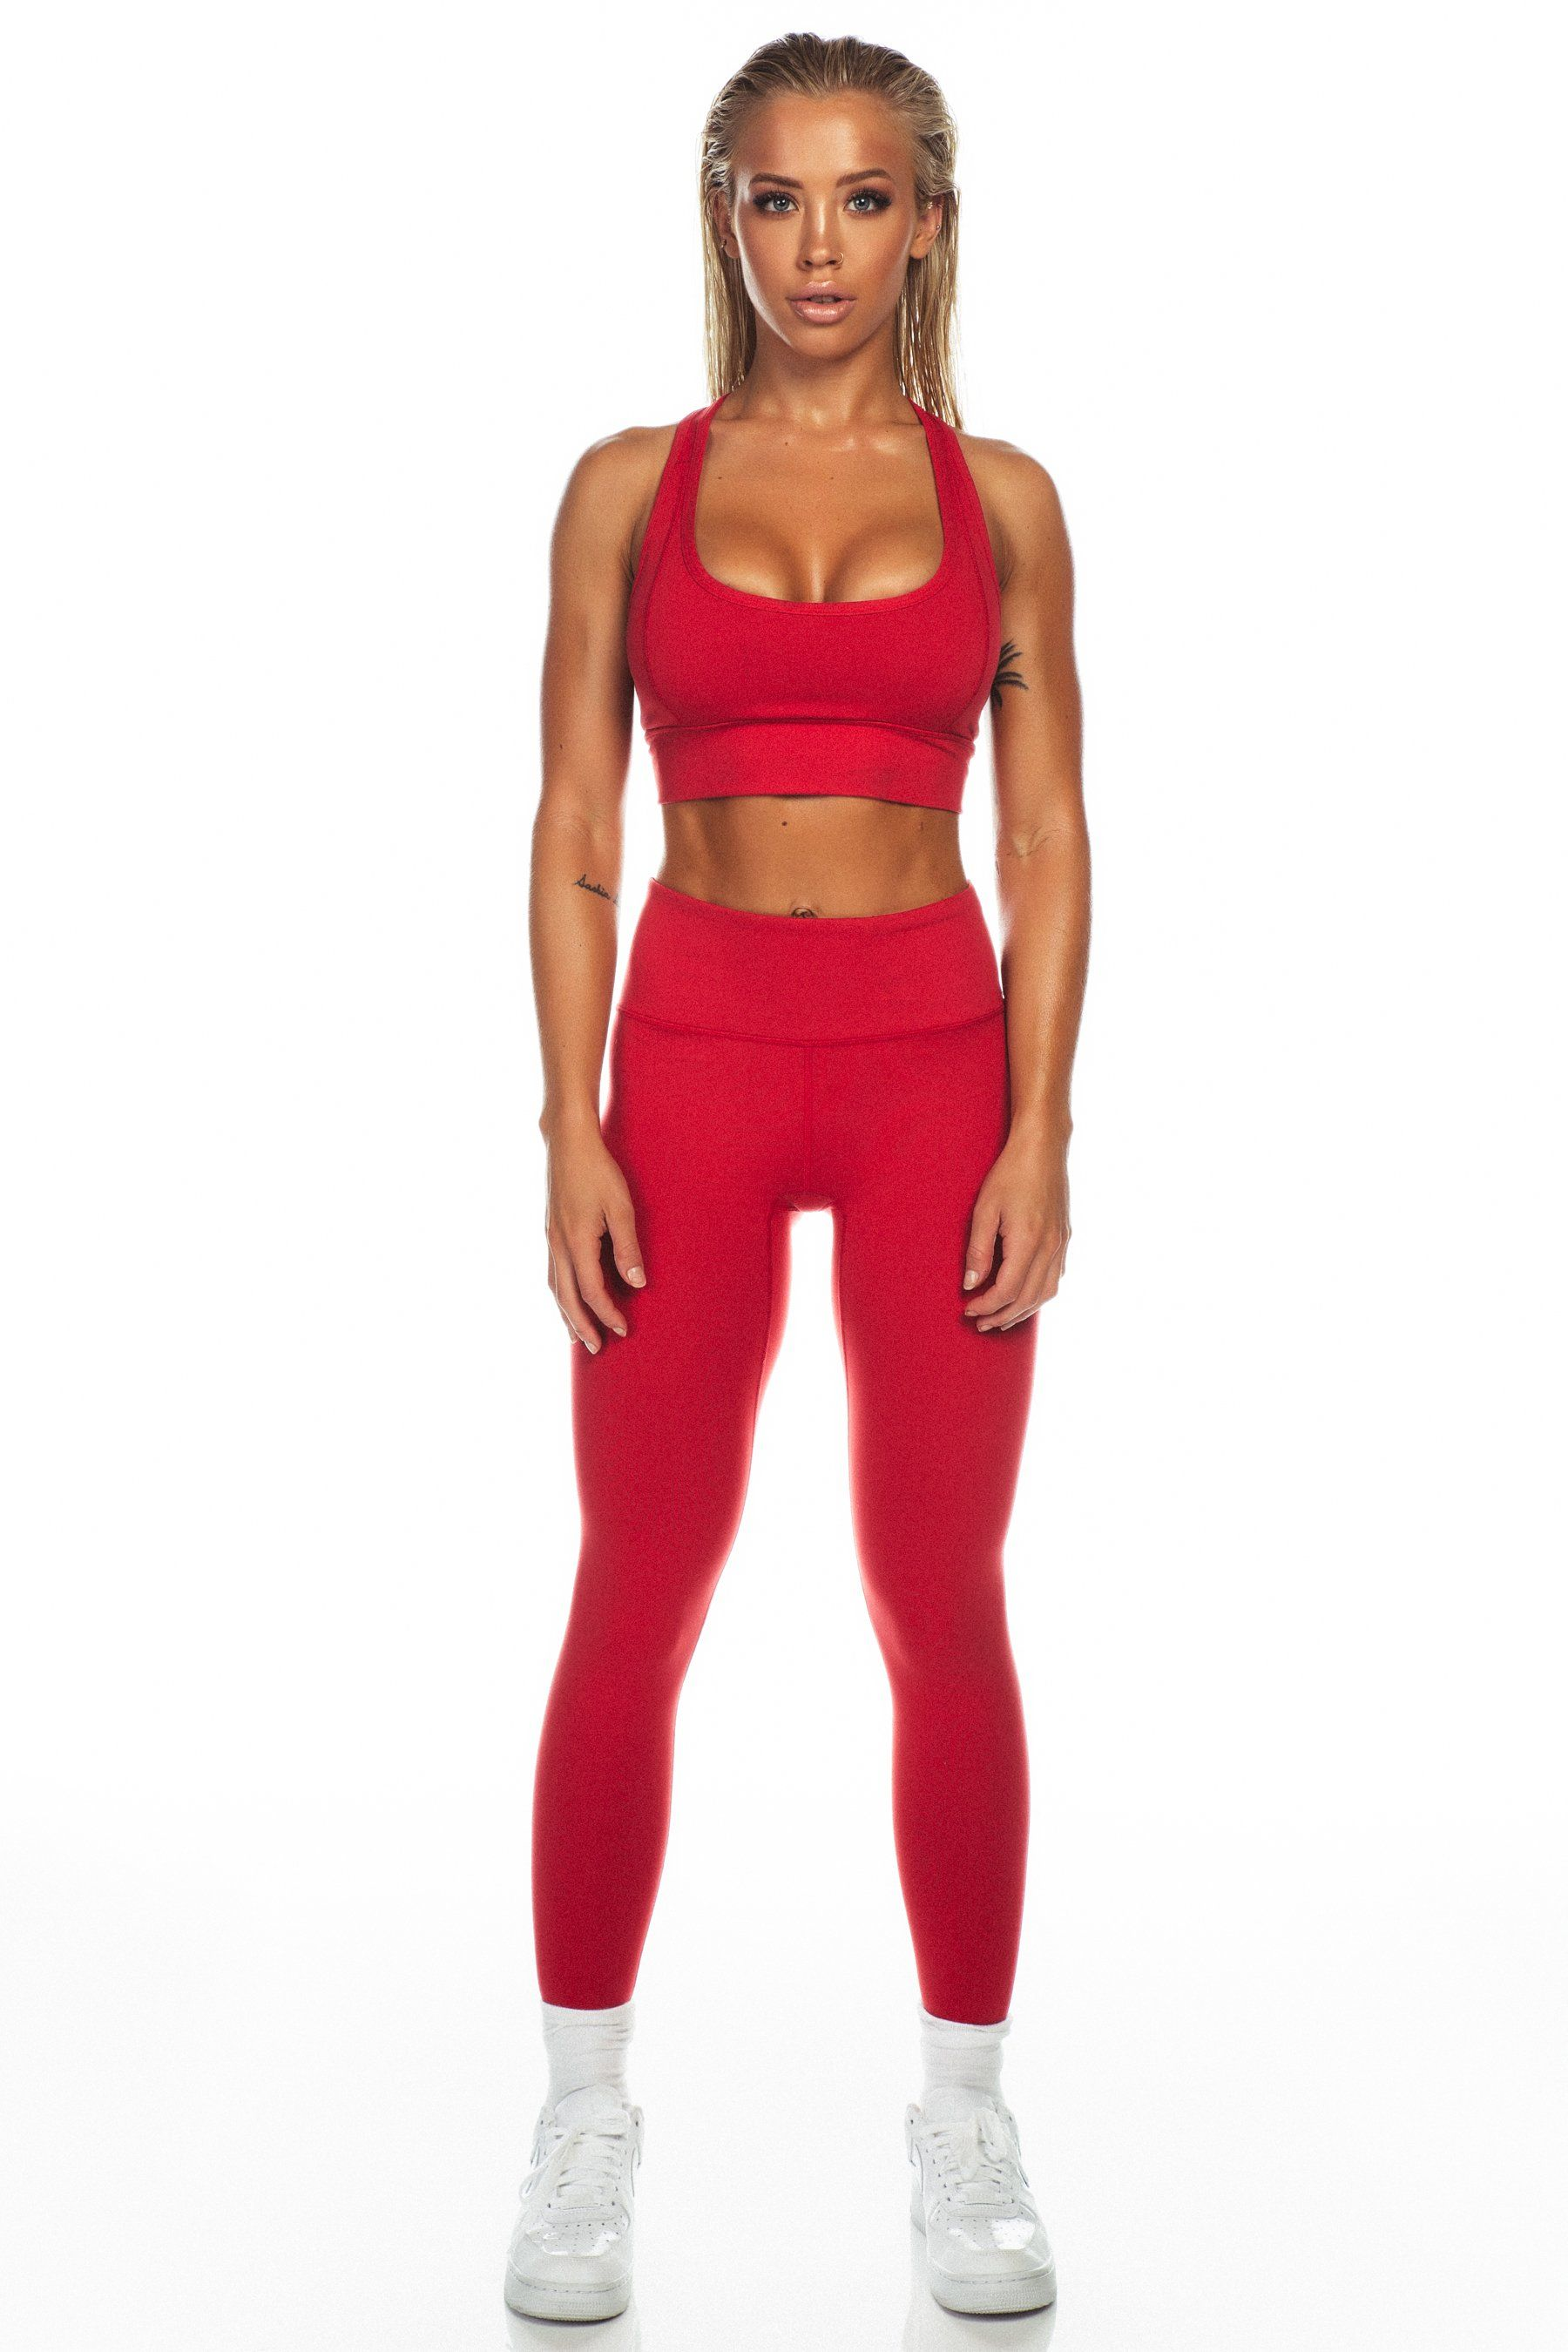 b23a91660075d Deep Red Sports Bra